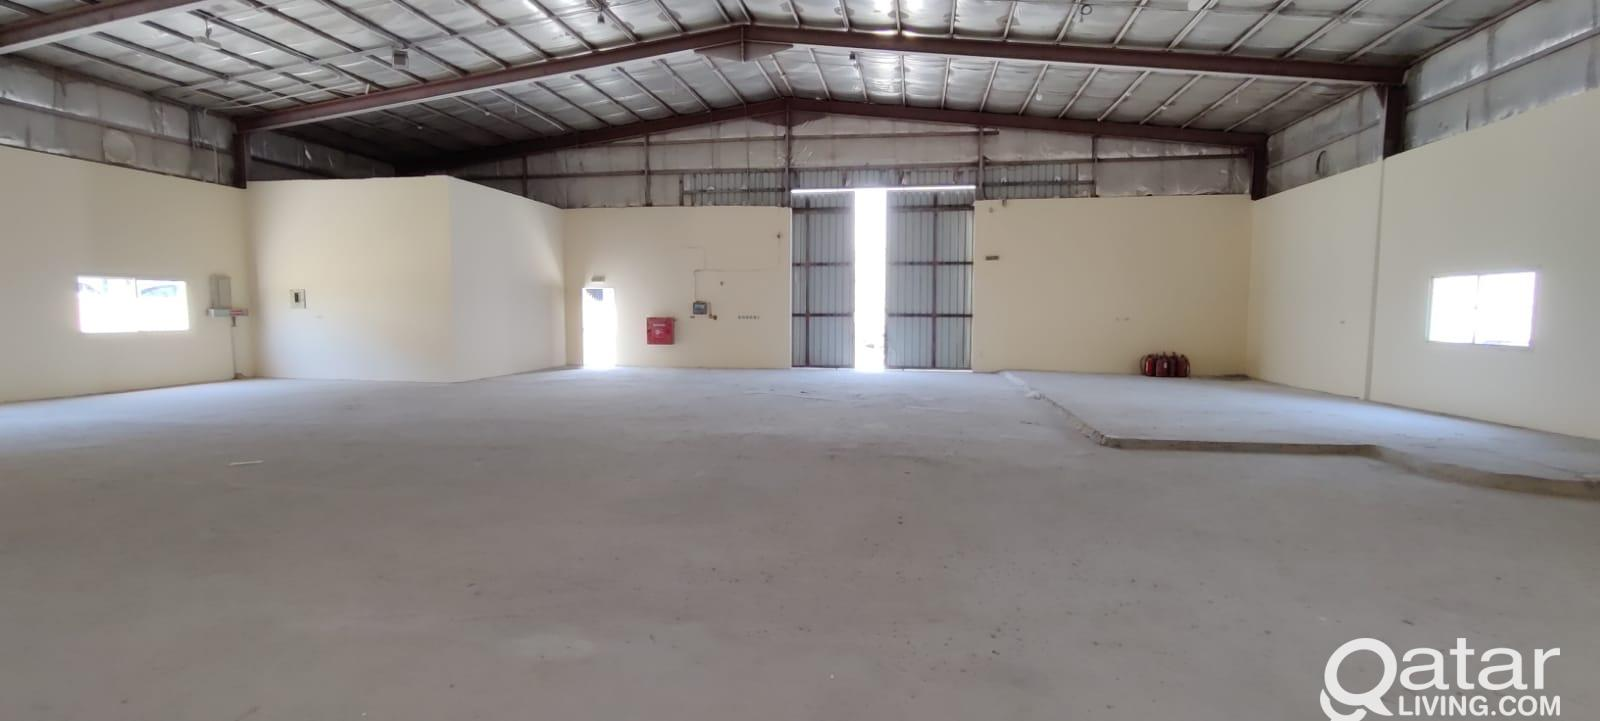 500 Workshop with 15 Room For Rent